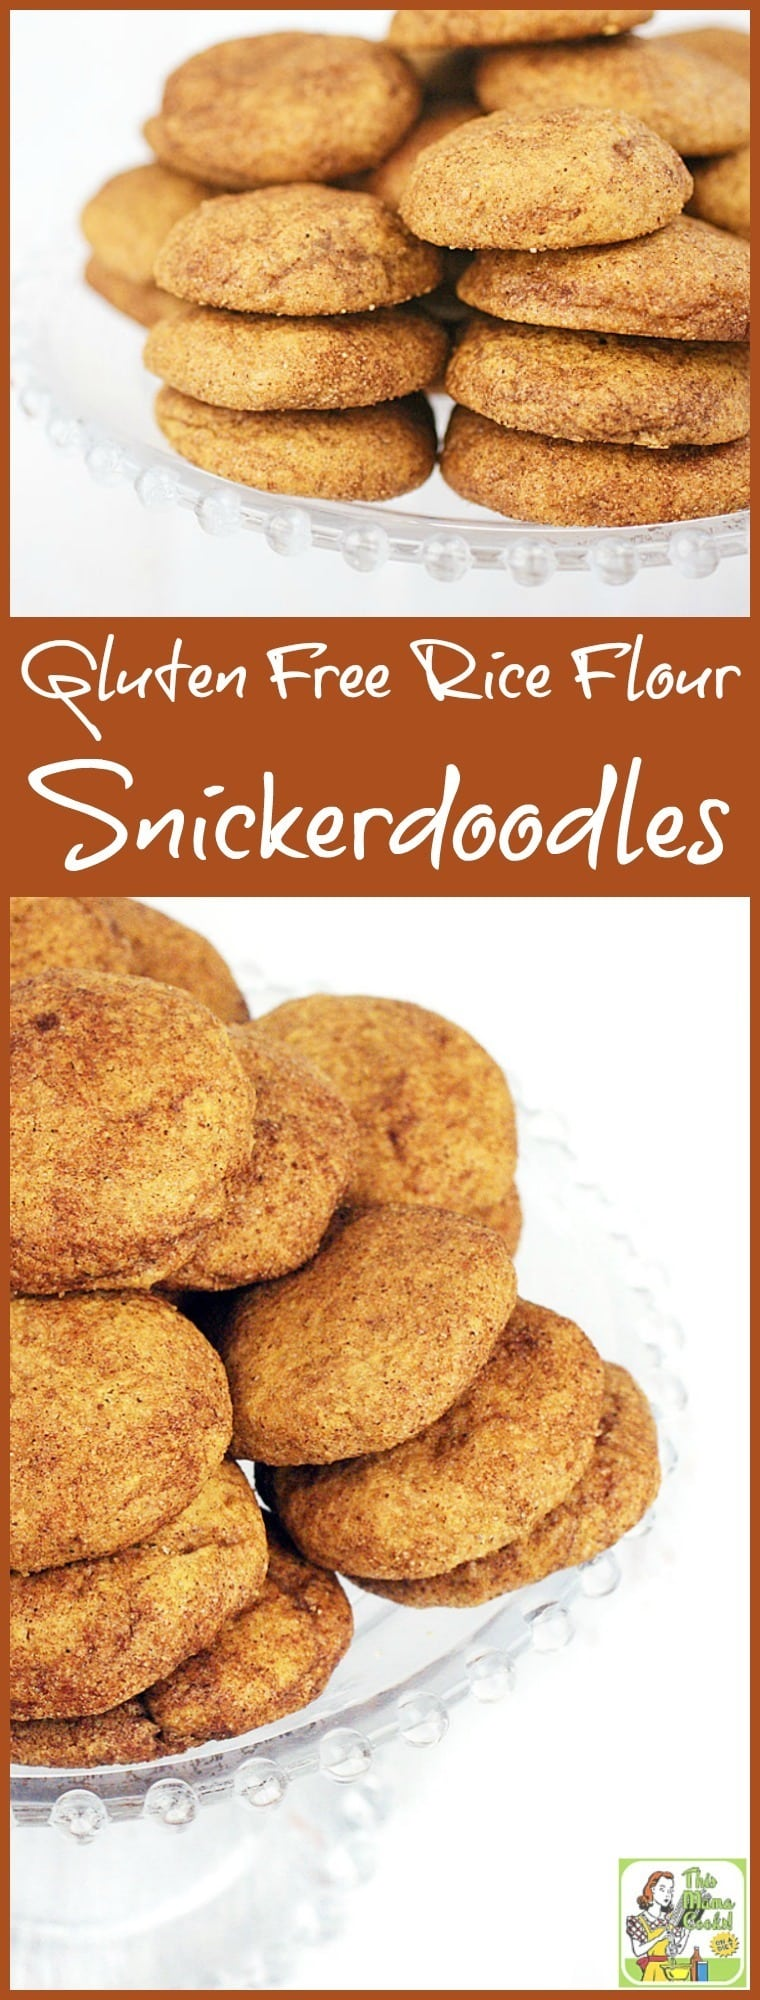 Looking for a gluten free cookie recipe? Click to get the recipe for this easy to make Gluten Free Rice Flour Snickerdoodles cookie recipe. Perfect for cookie exchanges or homemade gifts. #recipe #easy #recipeoftheday #healthyrecipes #glutenfree #easyrecipes #baking #cookies #cookieexchange